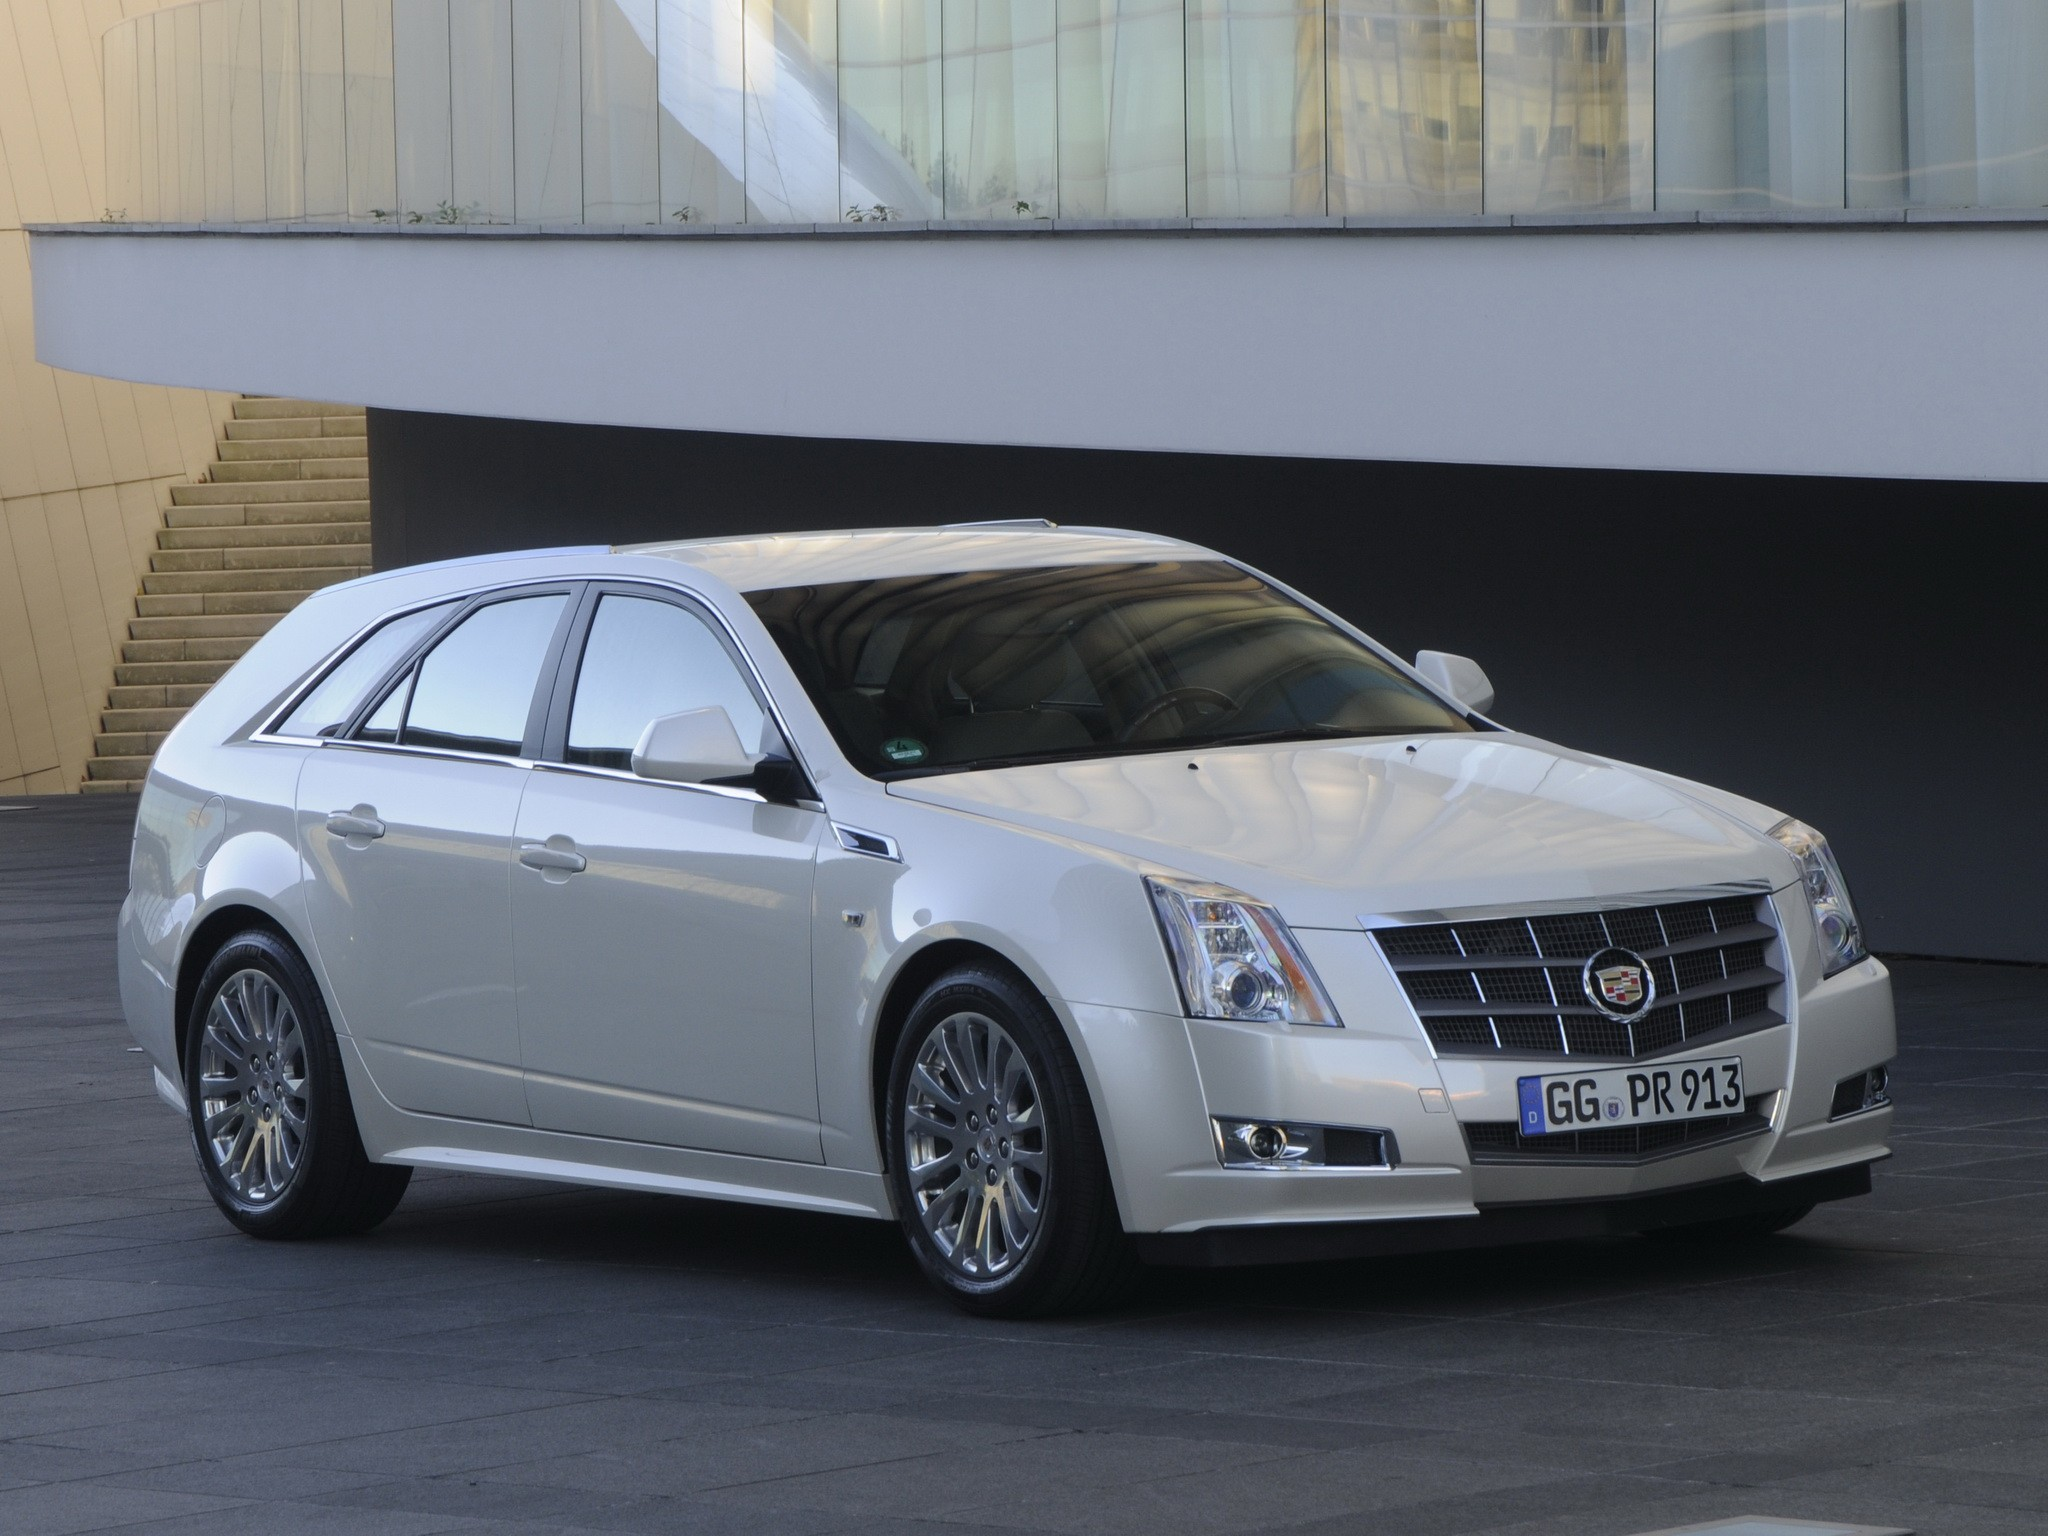 2010 Cadillac CTS Sport Wagon photo - 1